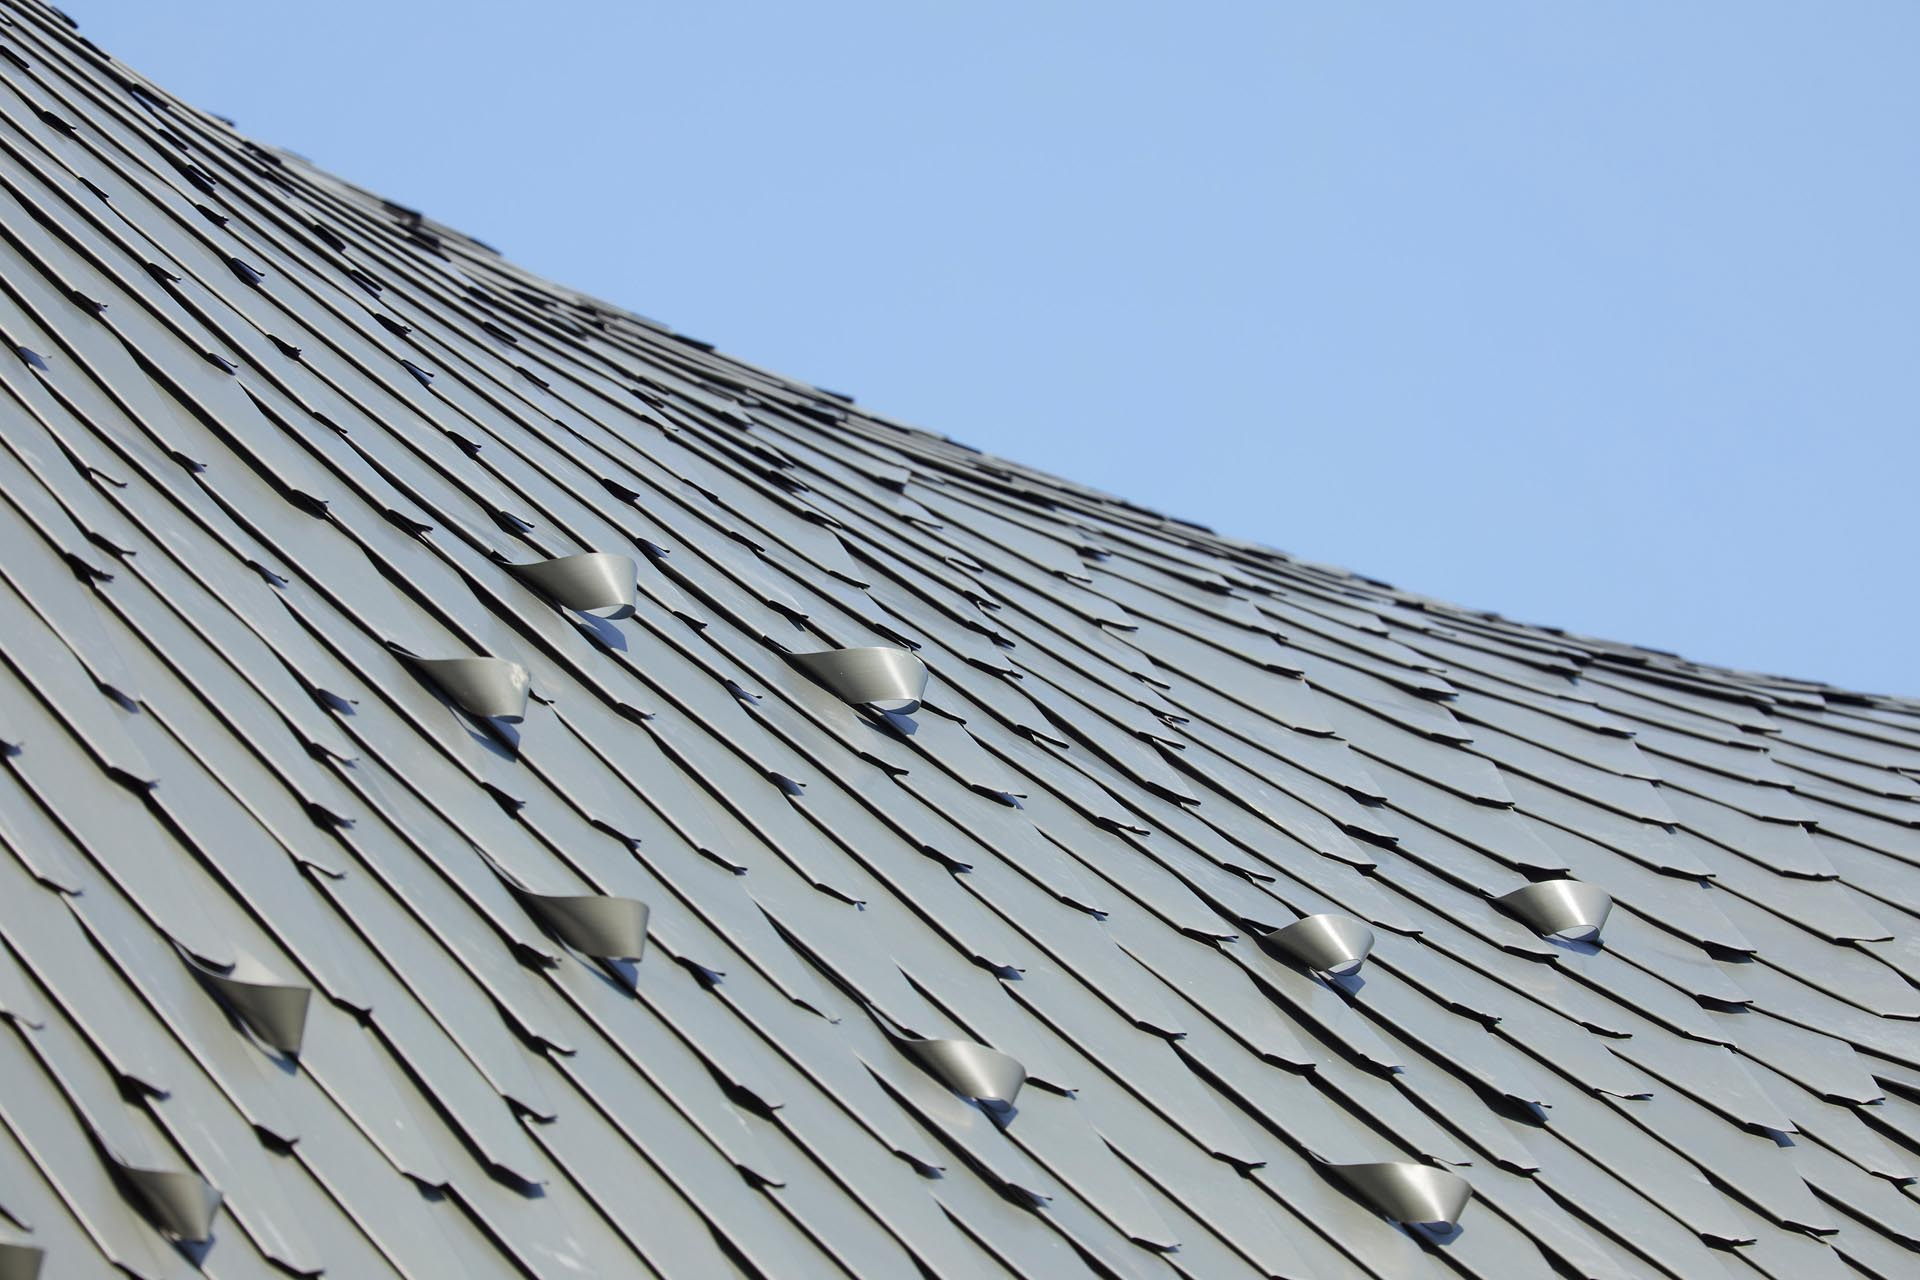 A modern curved roof is clad with hand-laid, diamond-shaped zinc shingles that both recalls a shimmering reptilian while also drawing connections with neighboring slate roofs. The handcrafted twisted zinc snow guards prevent falling snow.